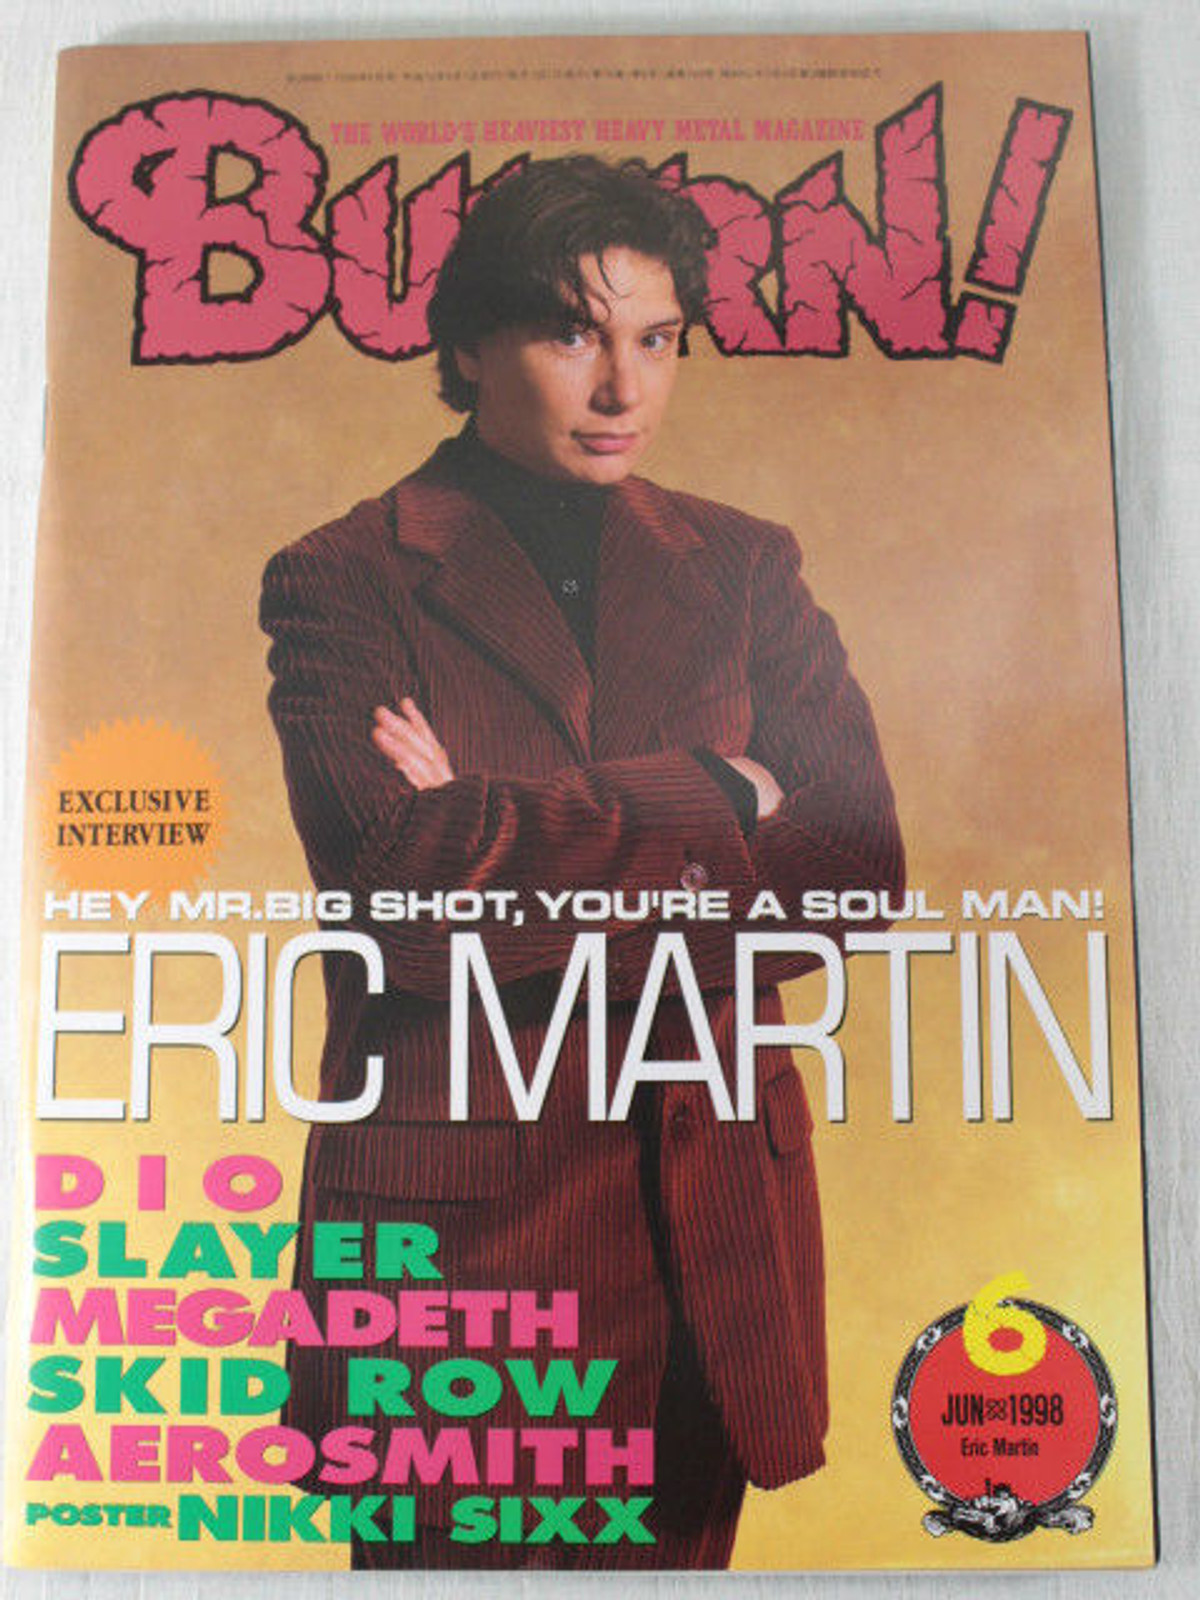 1998/06 BURRN! Japan Rock Magazine ERIC MARTIN/SKID ROW/DIO/SLAYER/AEROSMITH